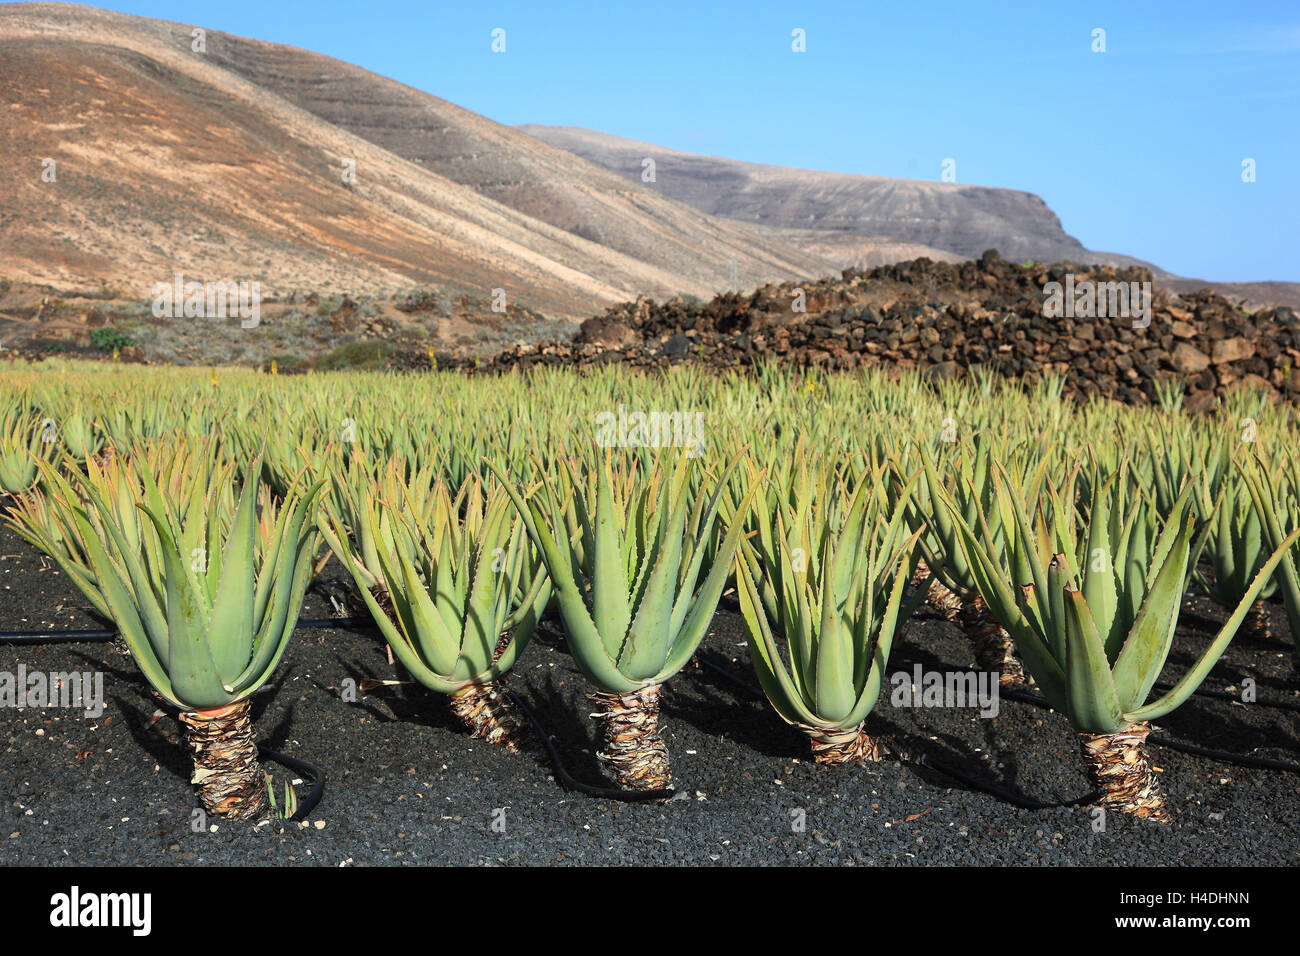 aloe vera plantation at orzola stock photos aloe vera plantation at orzola stock images alamy. Black Bedroom Furniture Sets. Home Design Ideas